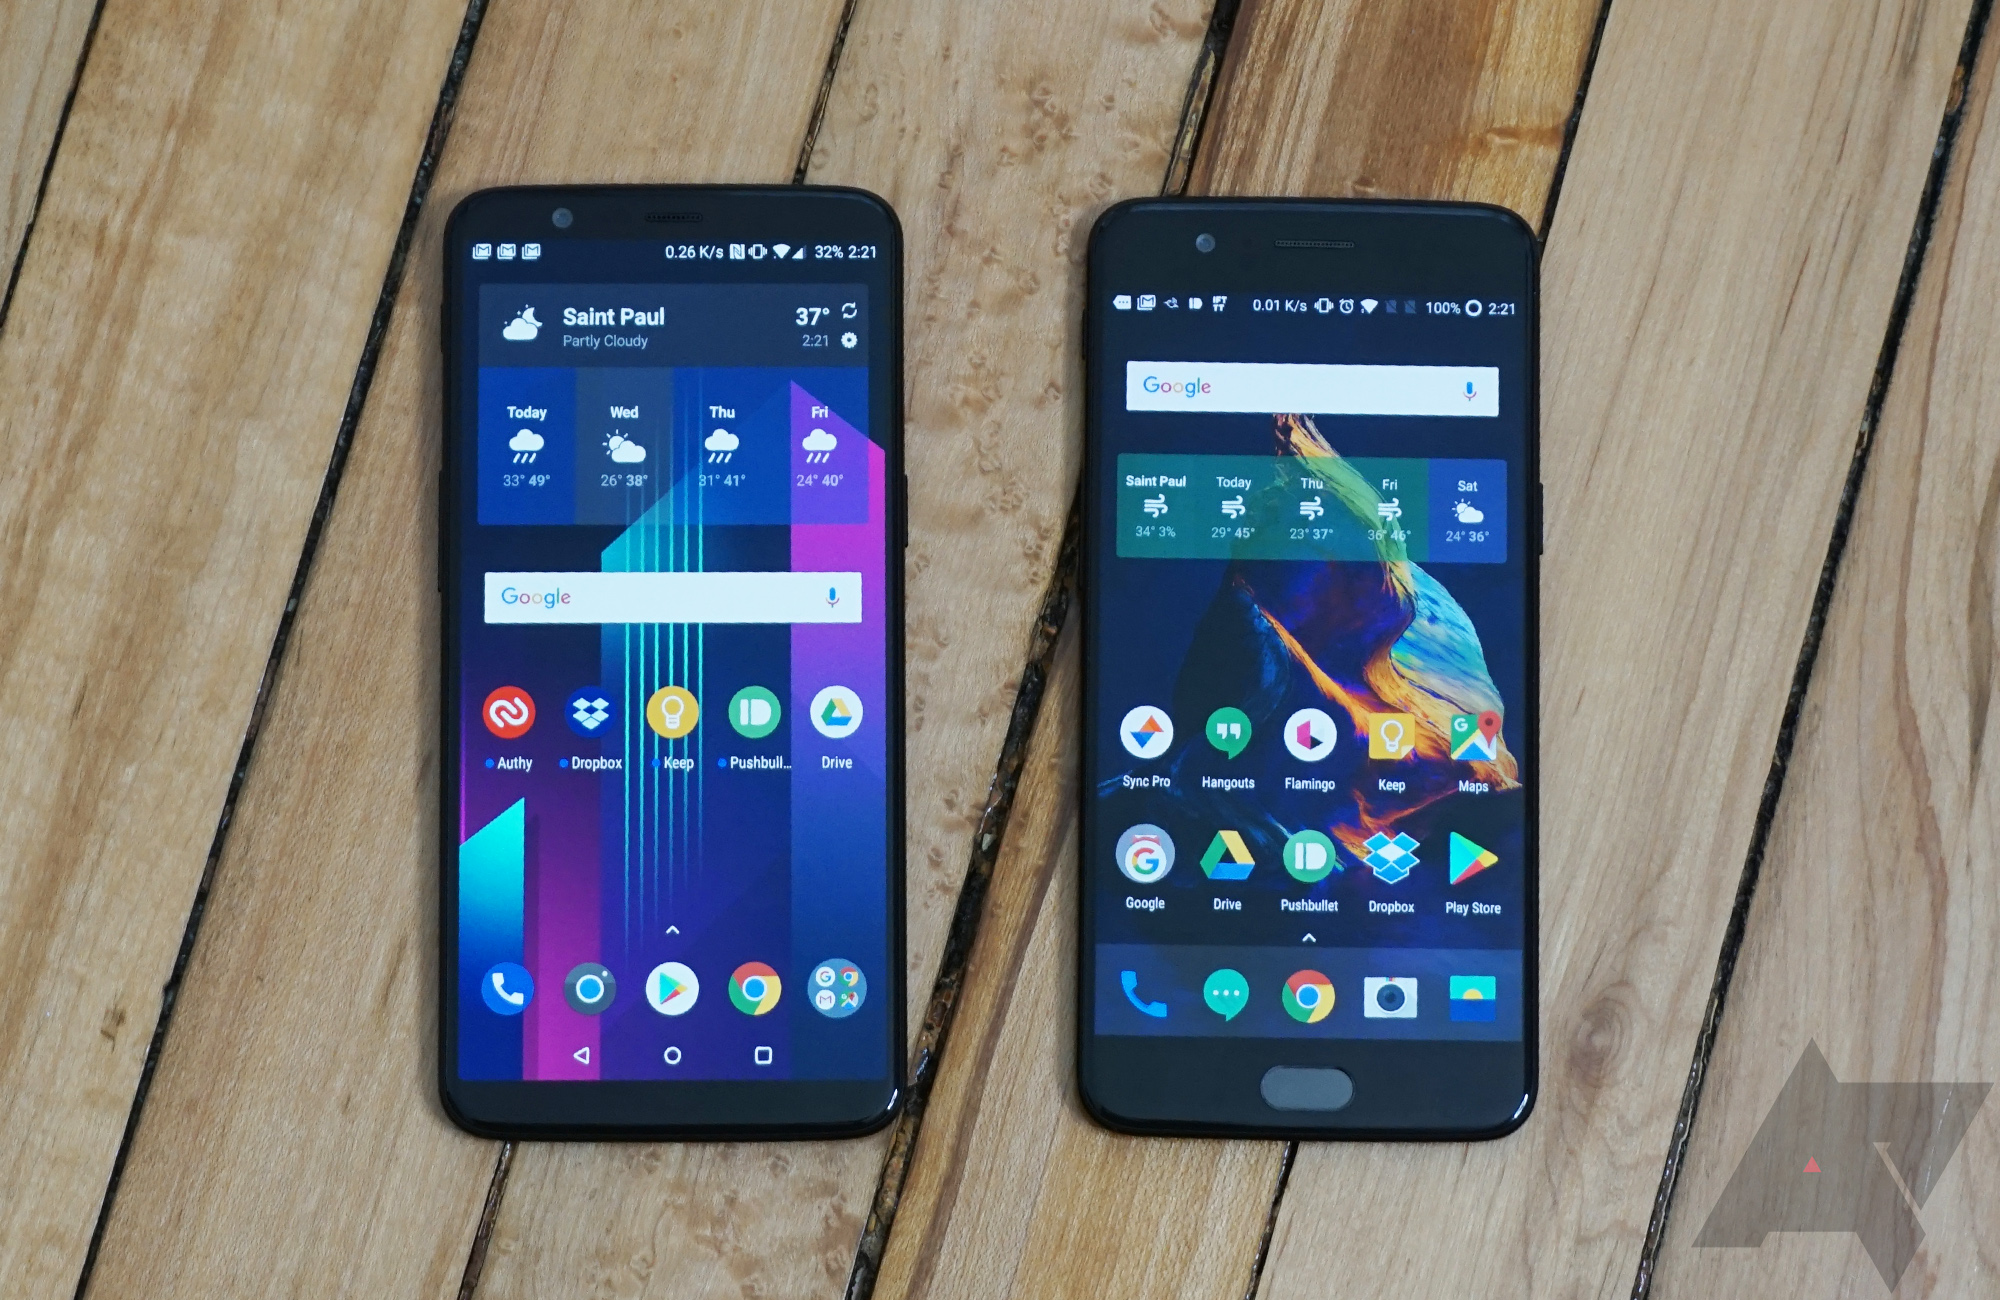 Android Q will eventually come to the OnePlus 5 and 5T